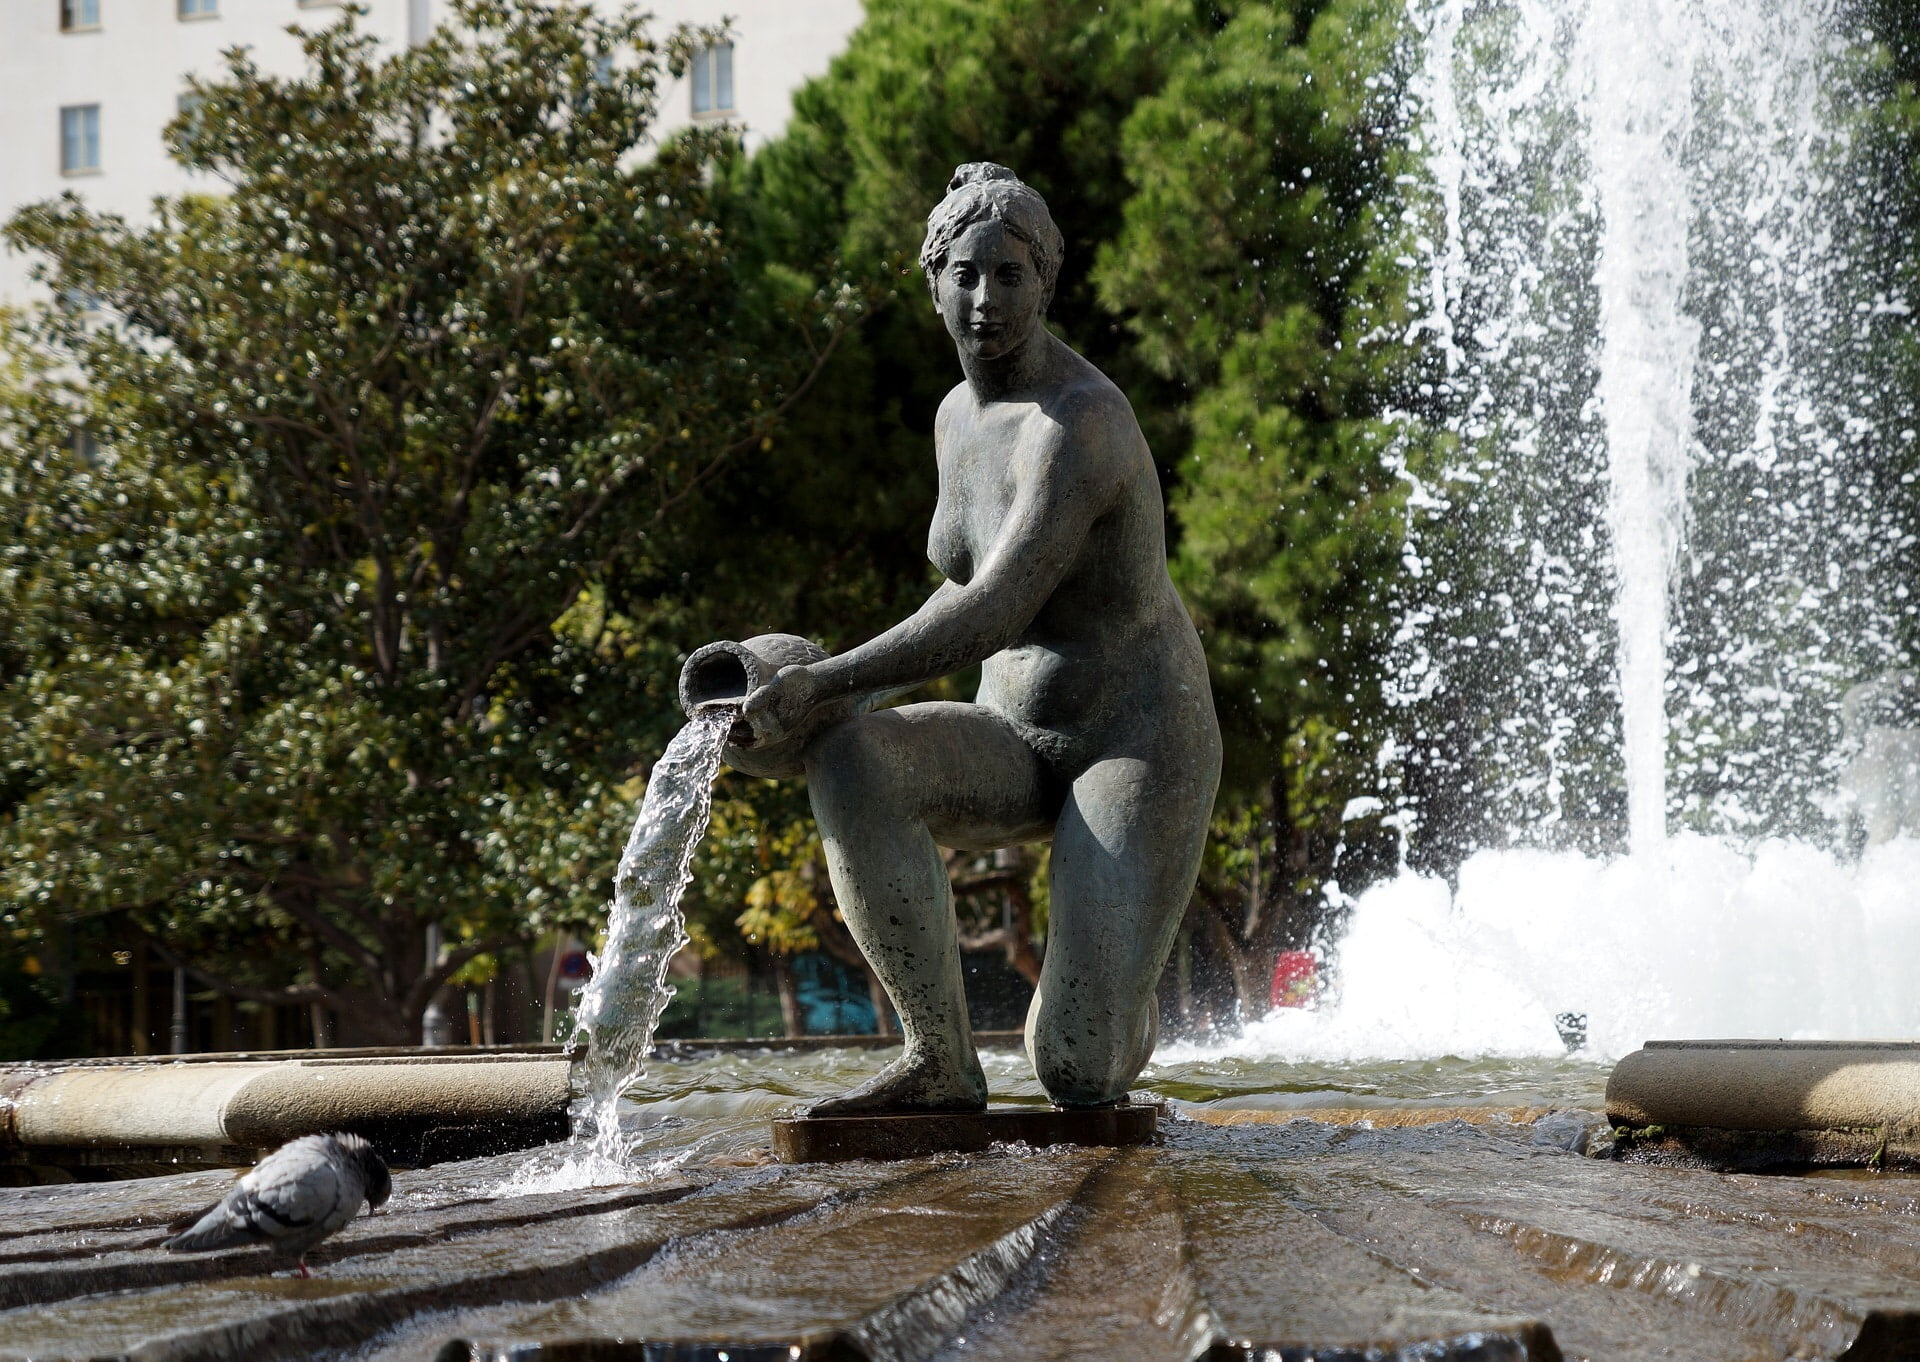 fountain of a woman pouring water